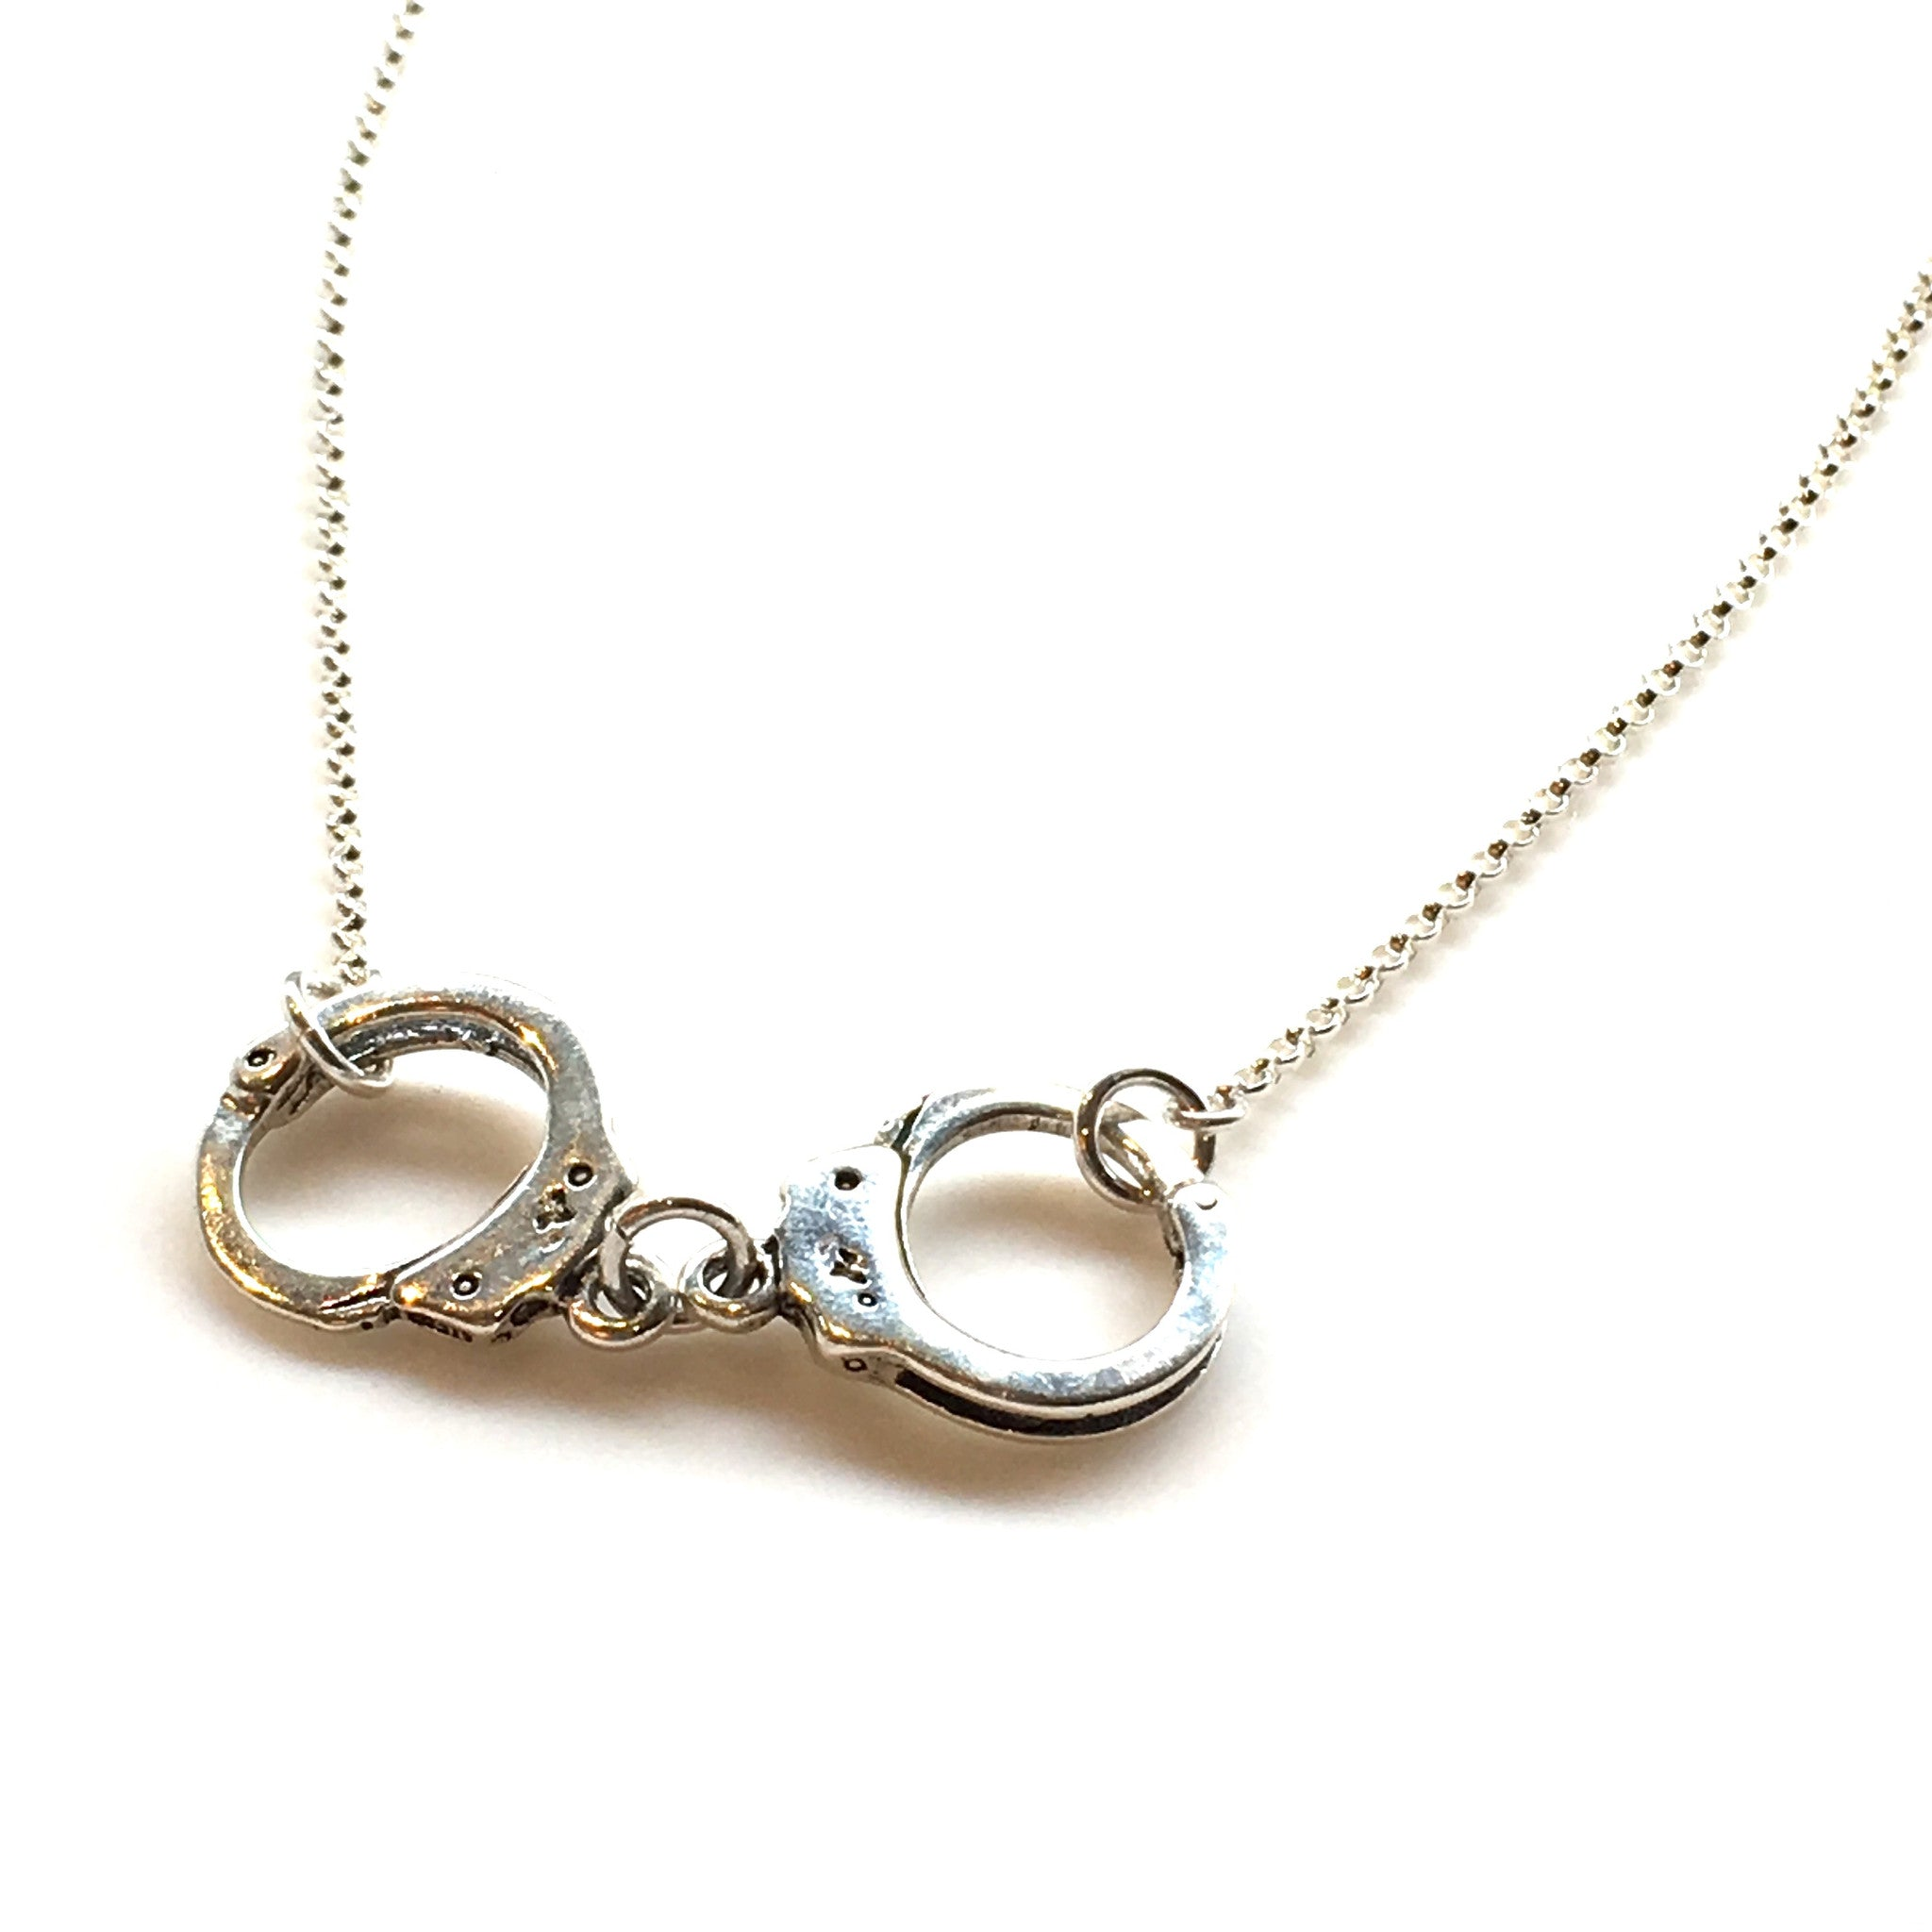 Handcuff necklace in sterling silver made handcuff necklace in sterling silver aloadofball Image collections